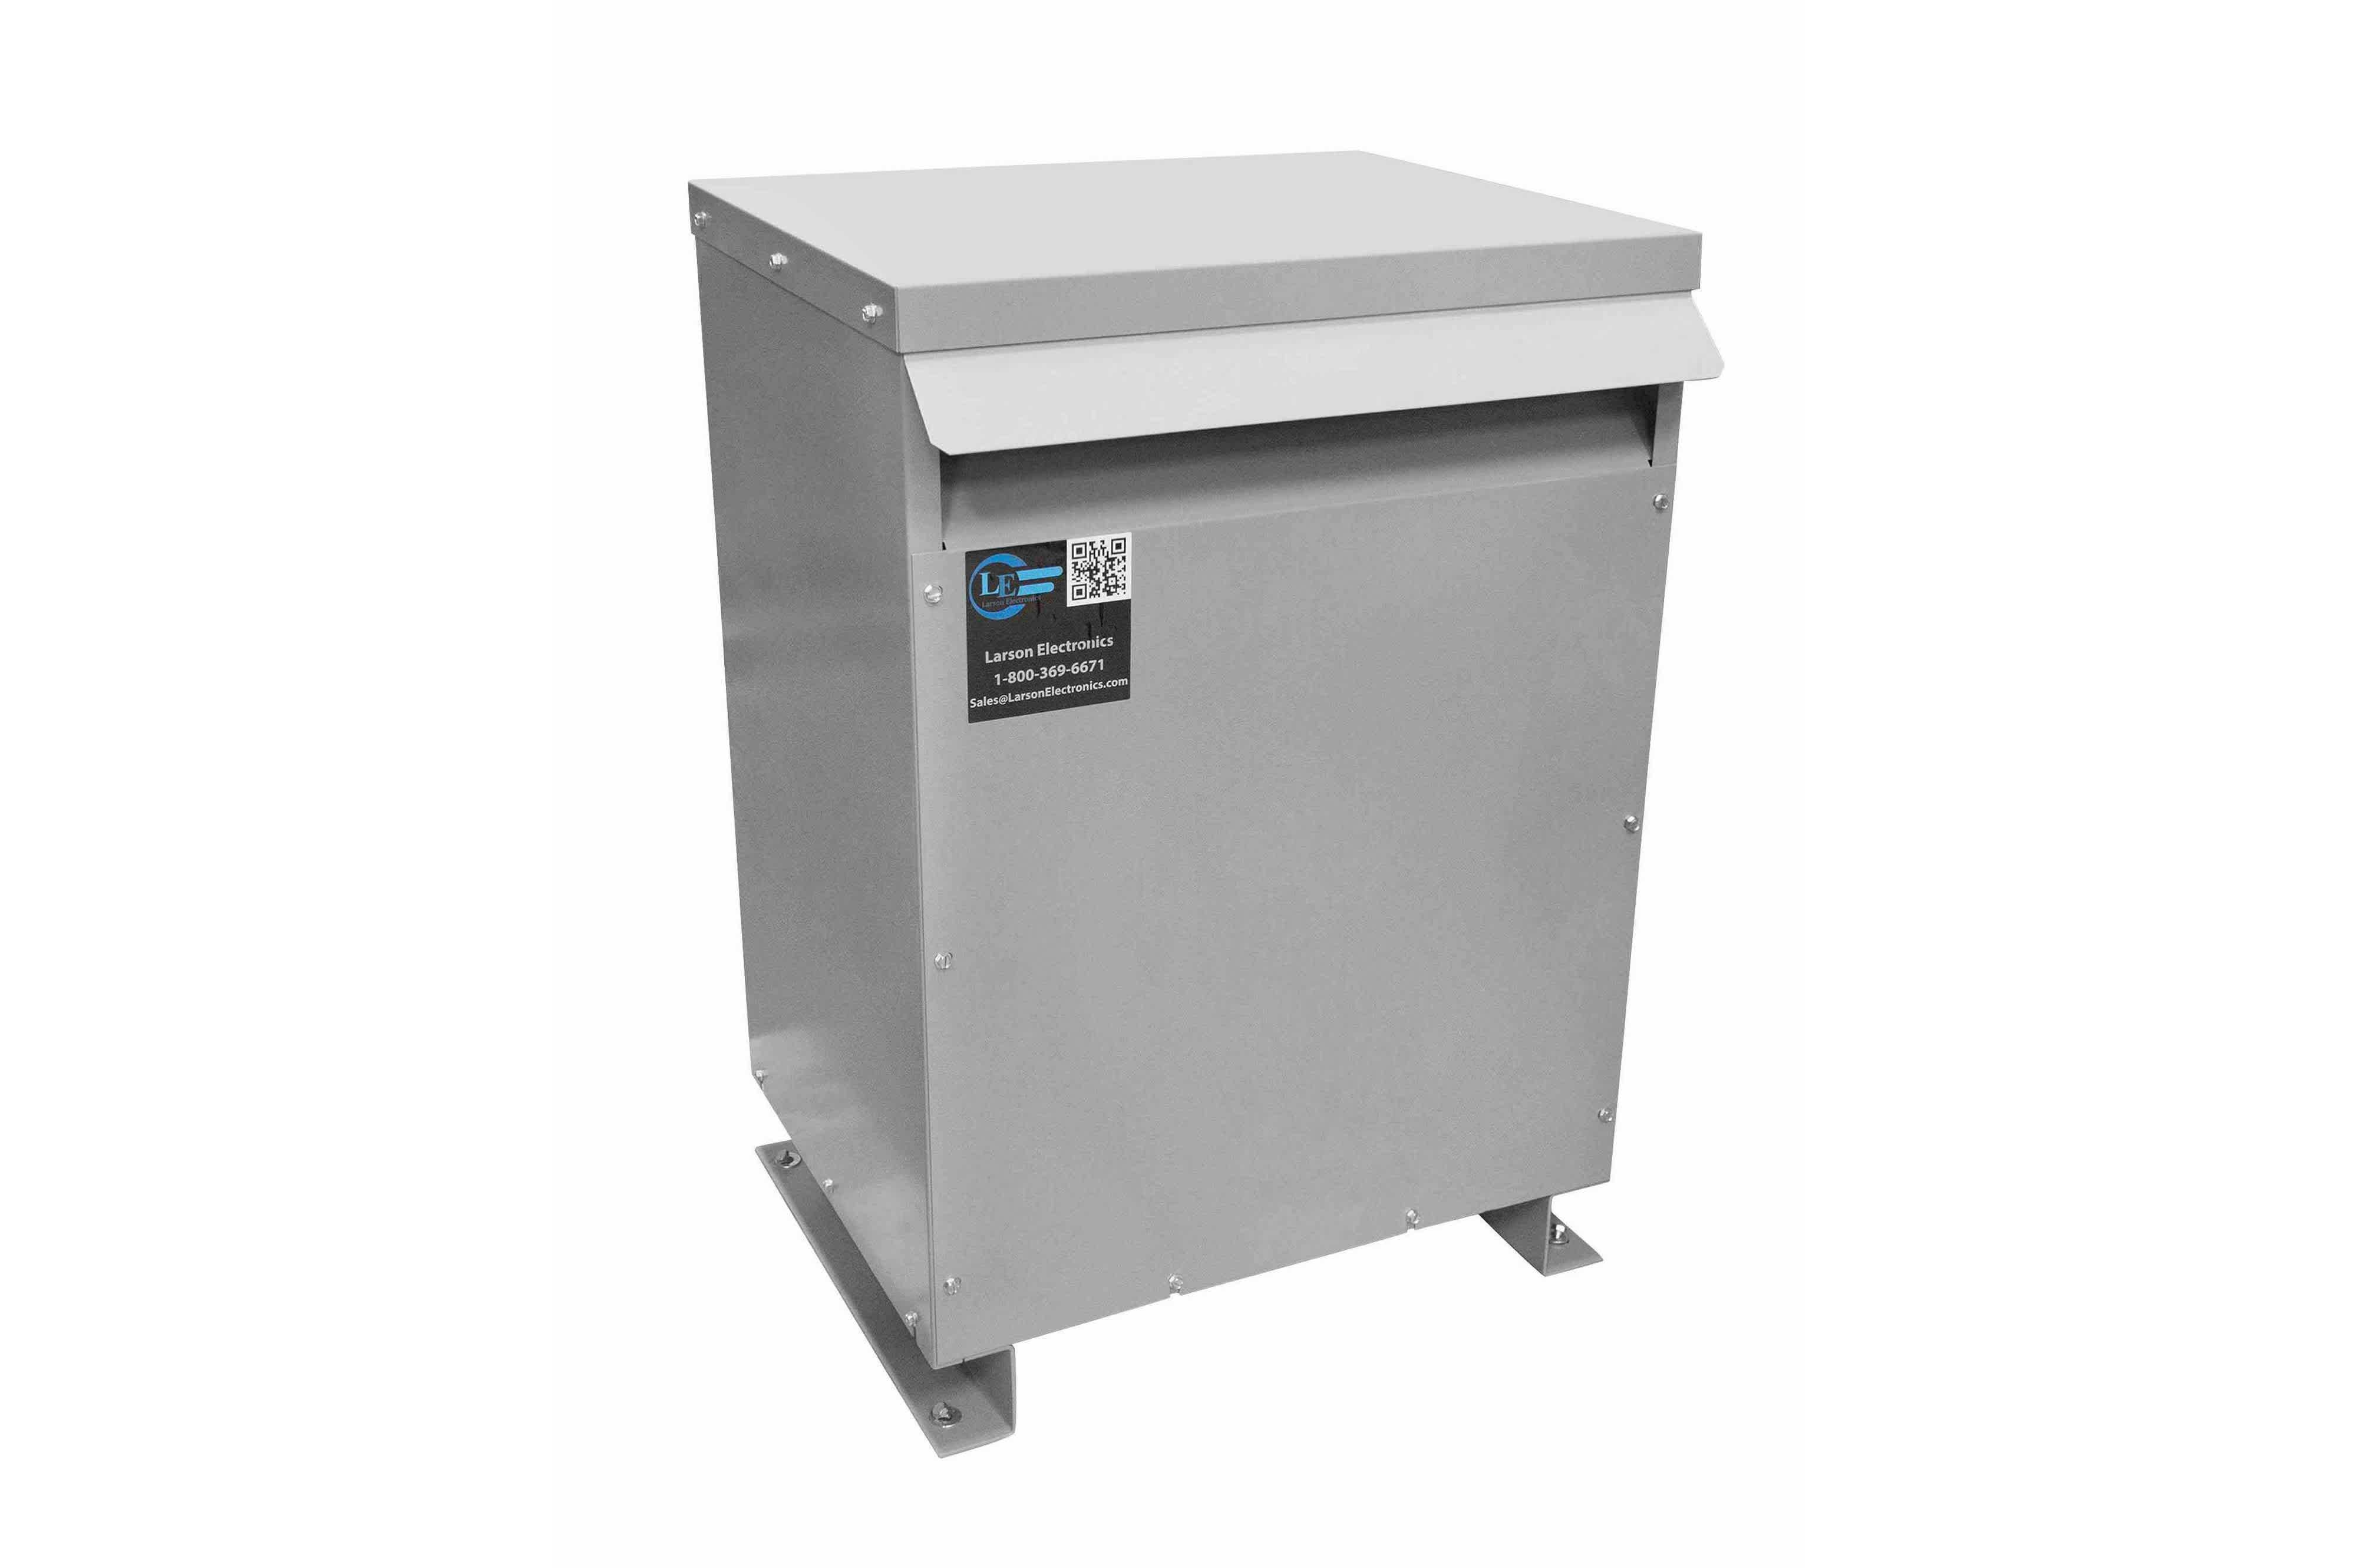 900 kVA 3PH Isolation Transformer, 380V Wye Primary, 480V Delta Secondary, N3R, Ventilated, 60 Hz